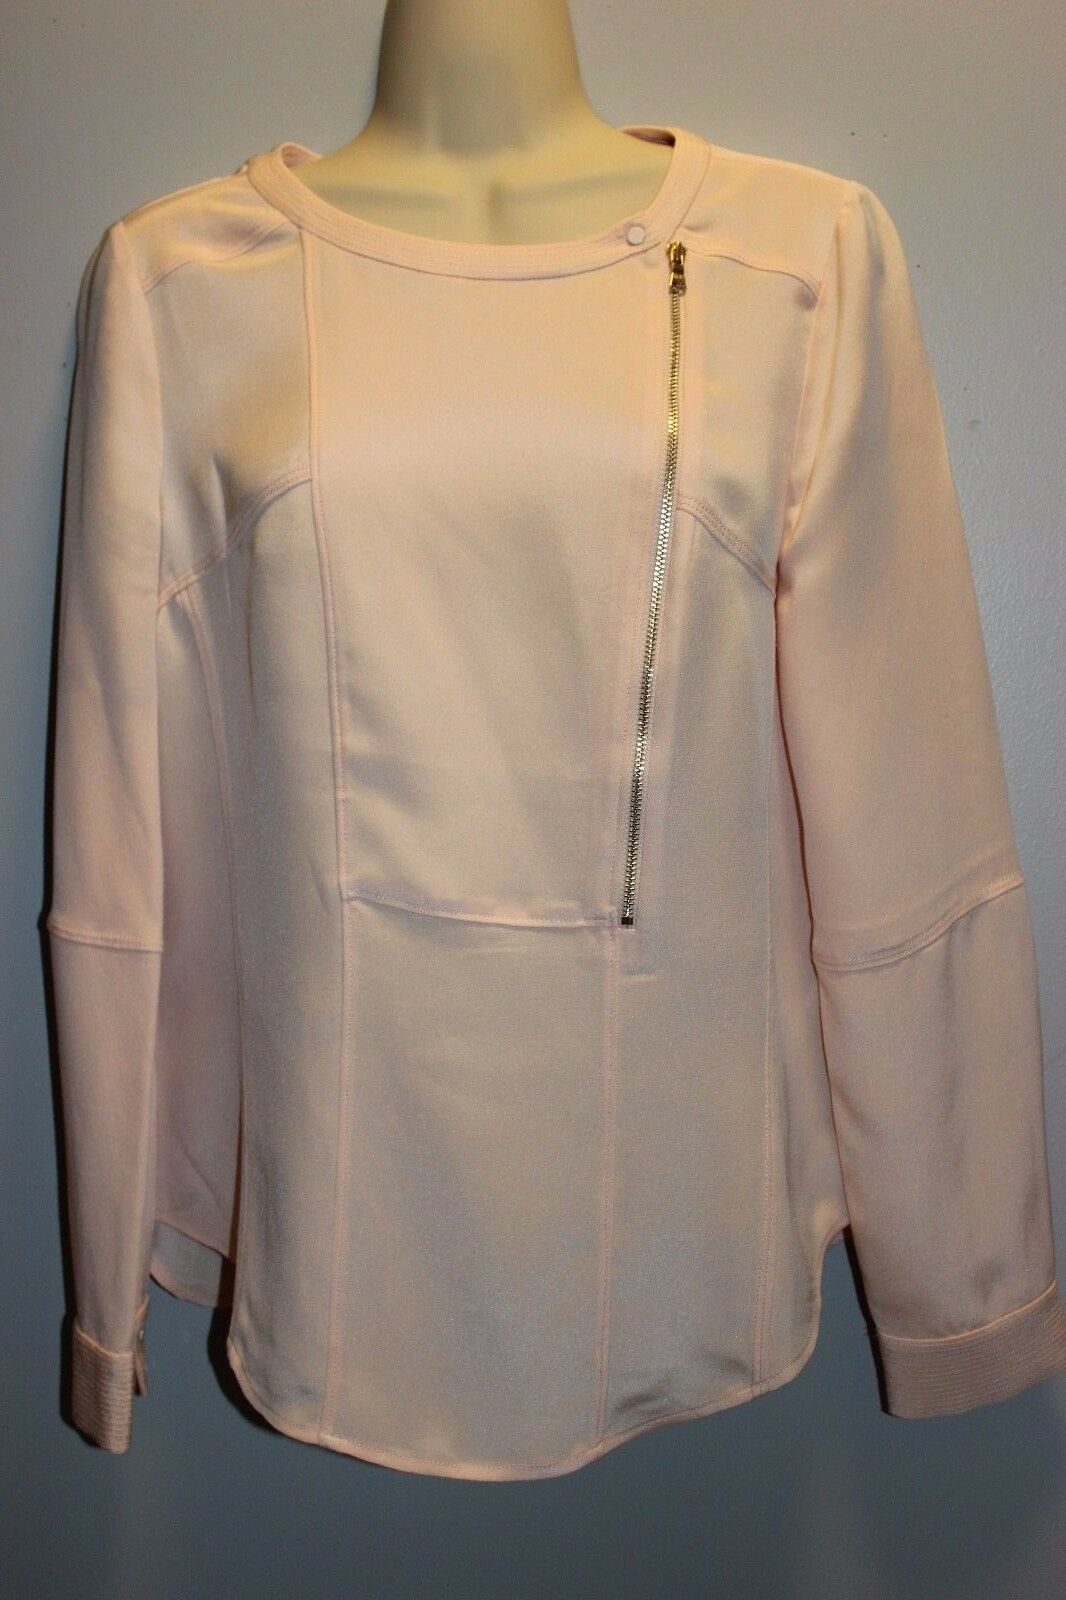 J CREW COLLECTION LUXE SILK MOTO TOP Blouse  4 Style  e2271 DQU 198 NWT